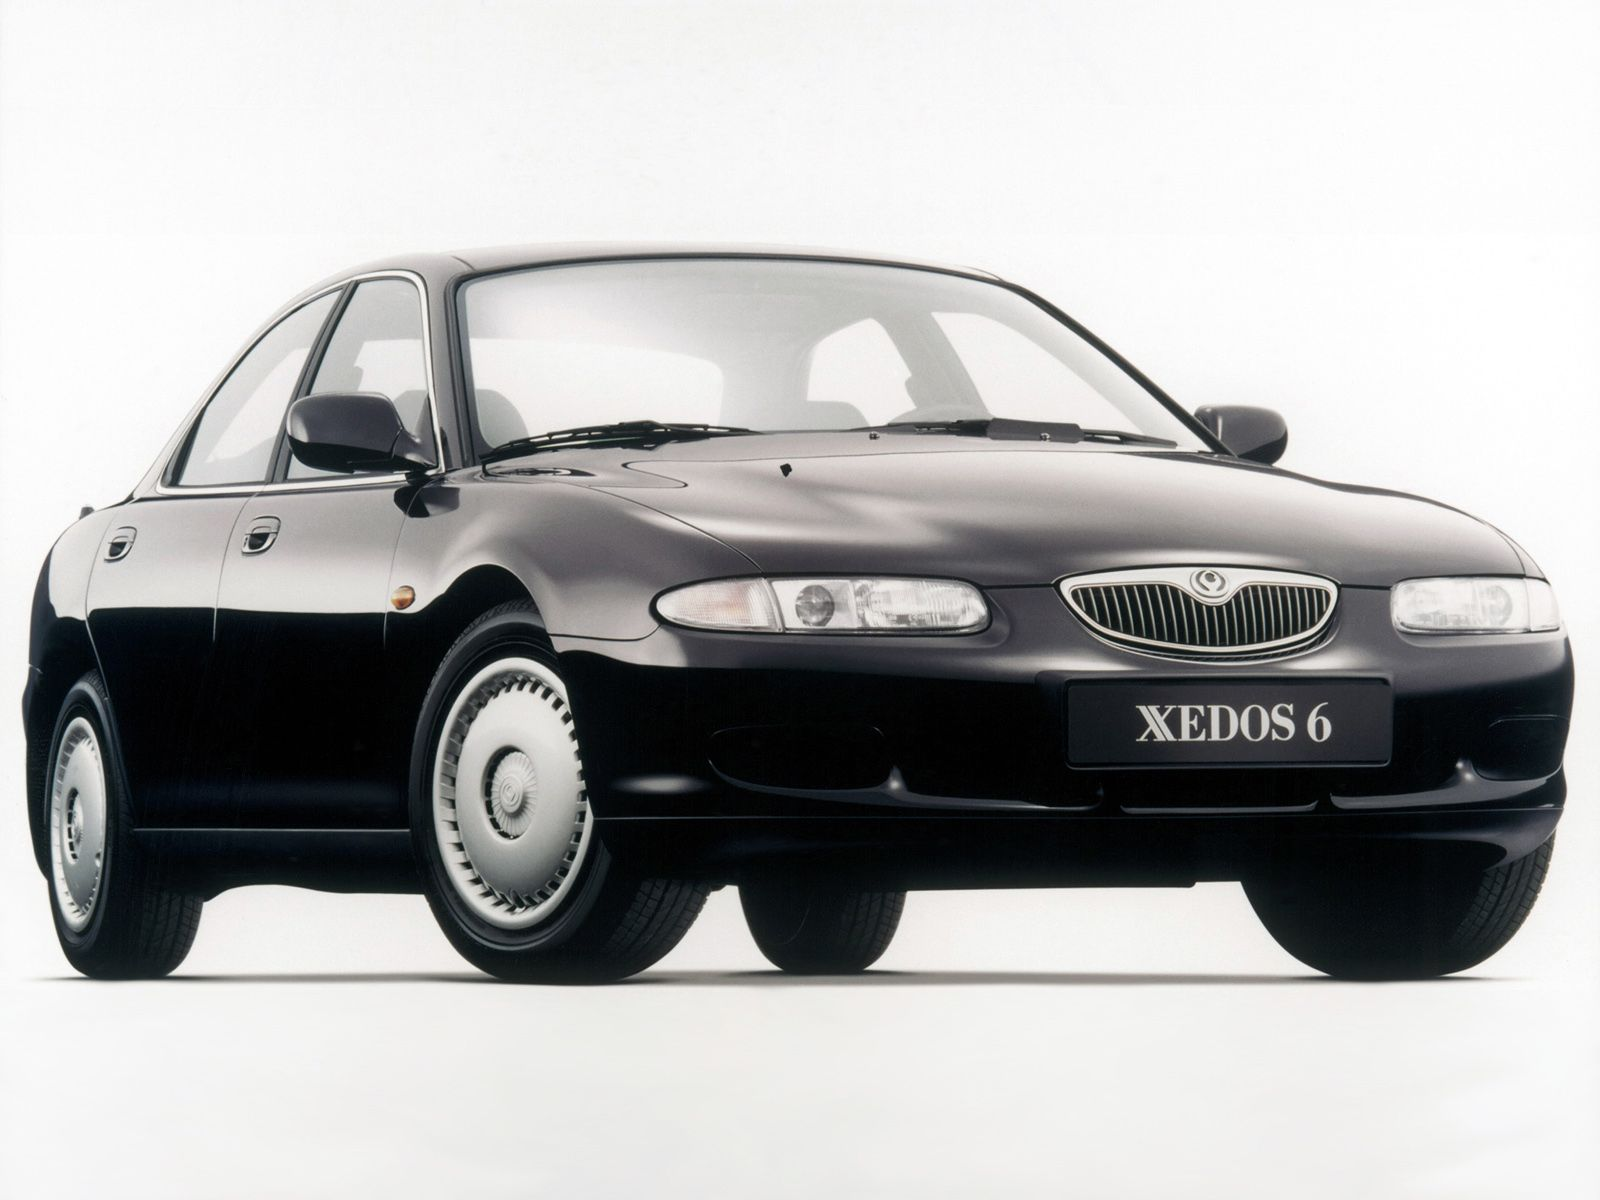 mazda xedos 6 oder eunos 500 fron 1992 design by takeshi arakawa japan mazda xedos 6 mazda. Black Bedroom Furniture Sets. Home Design Ideas